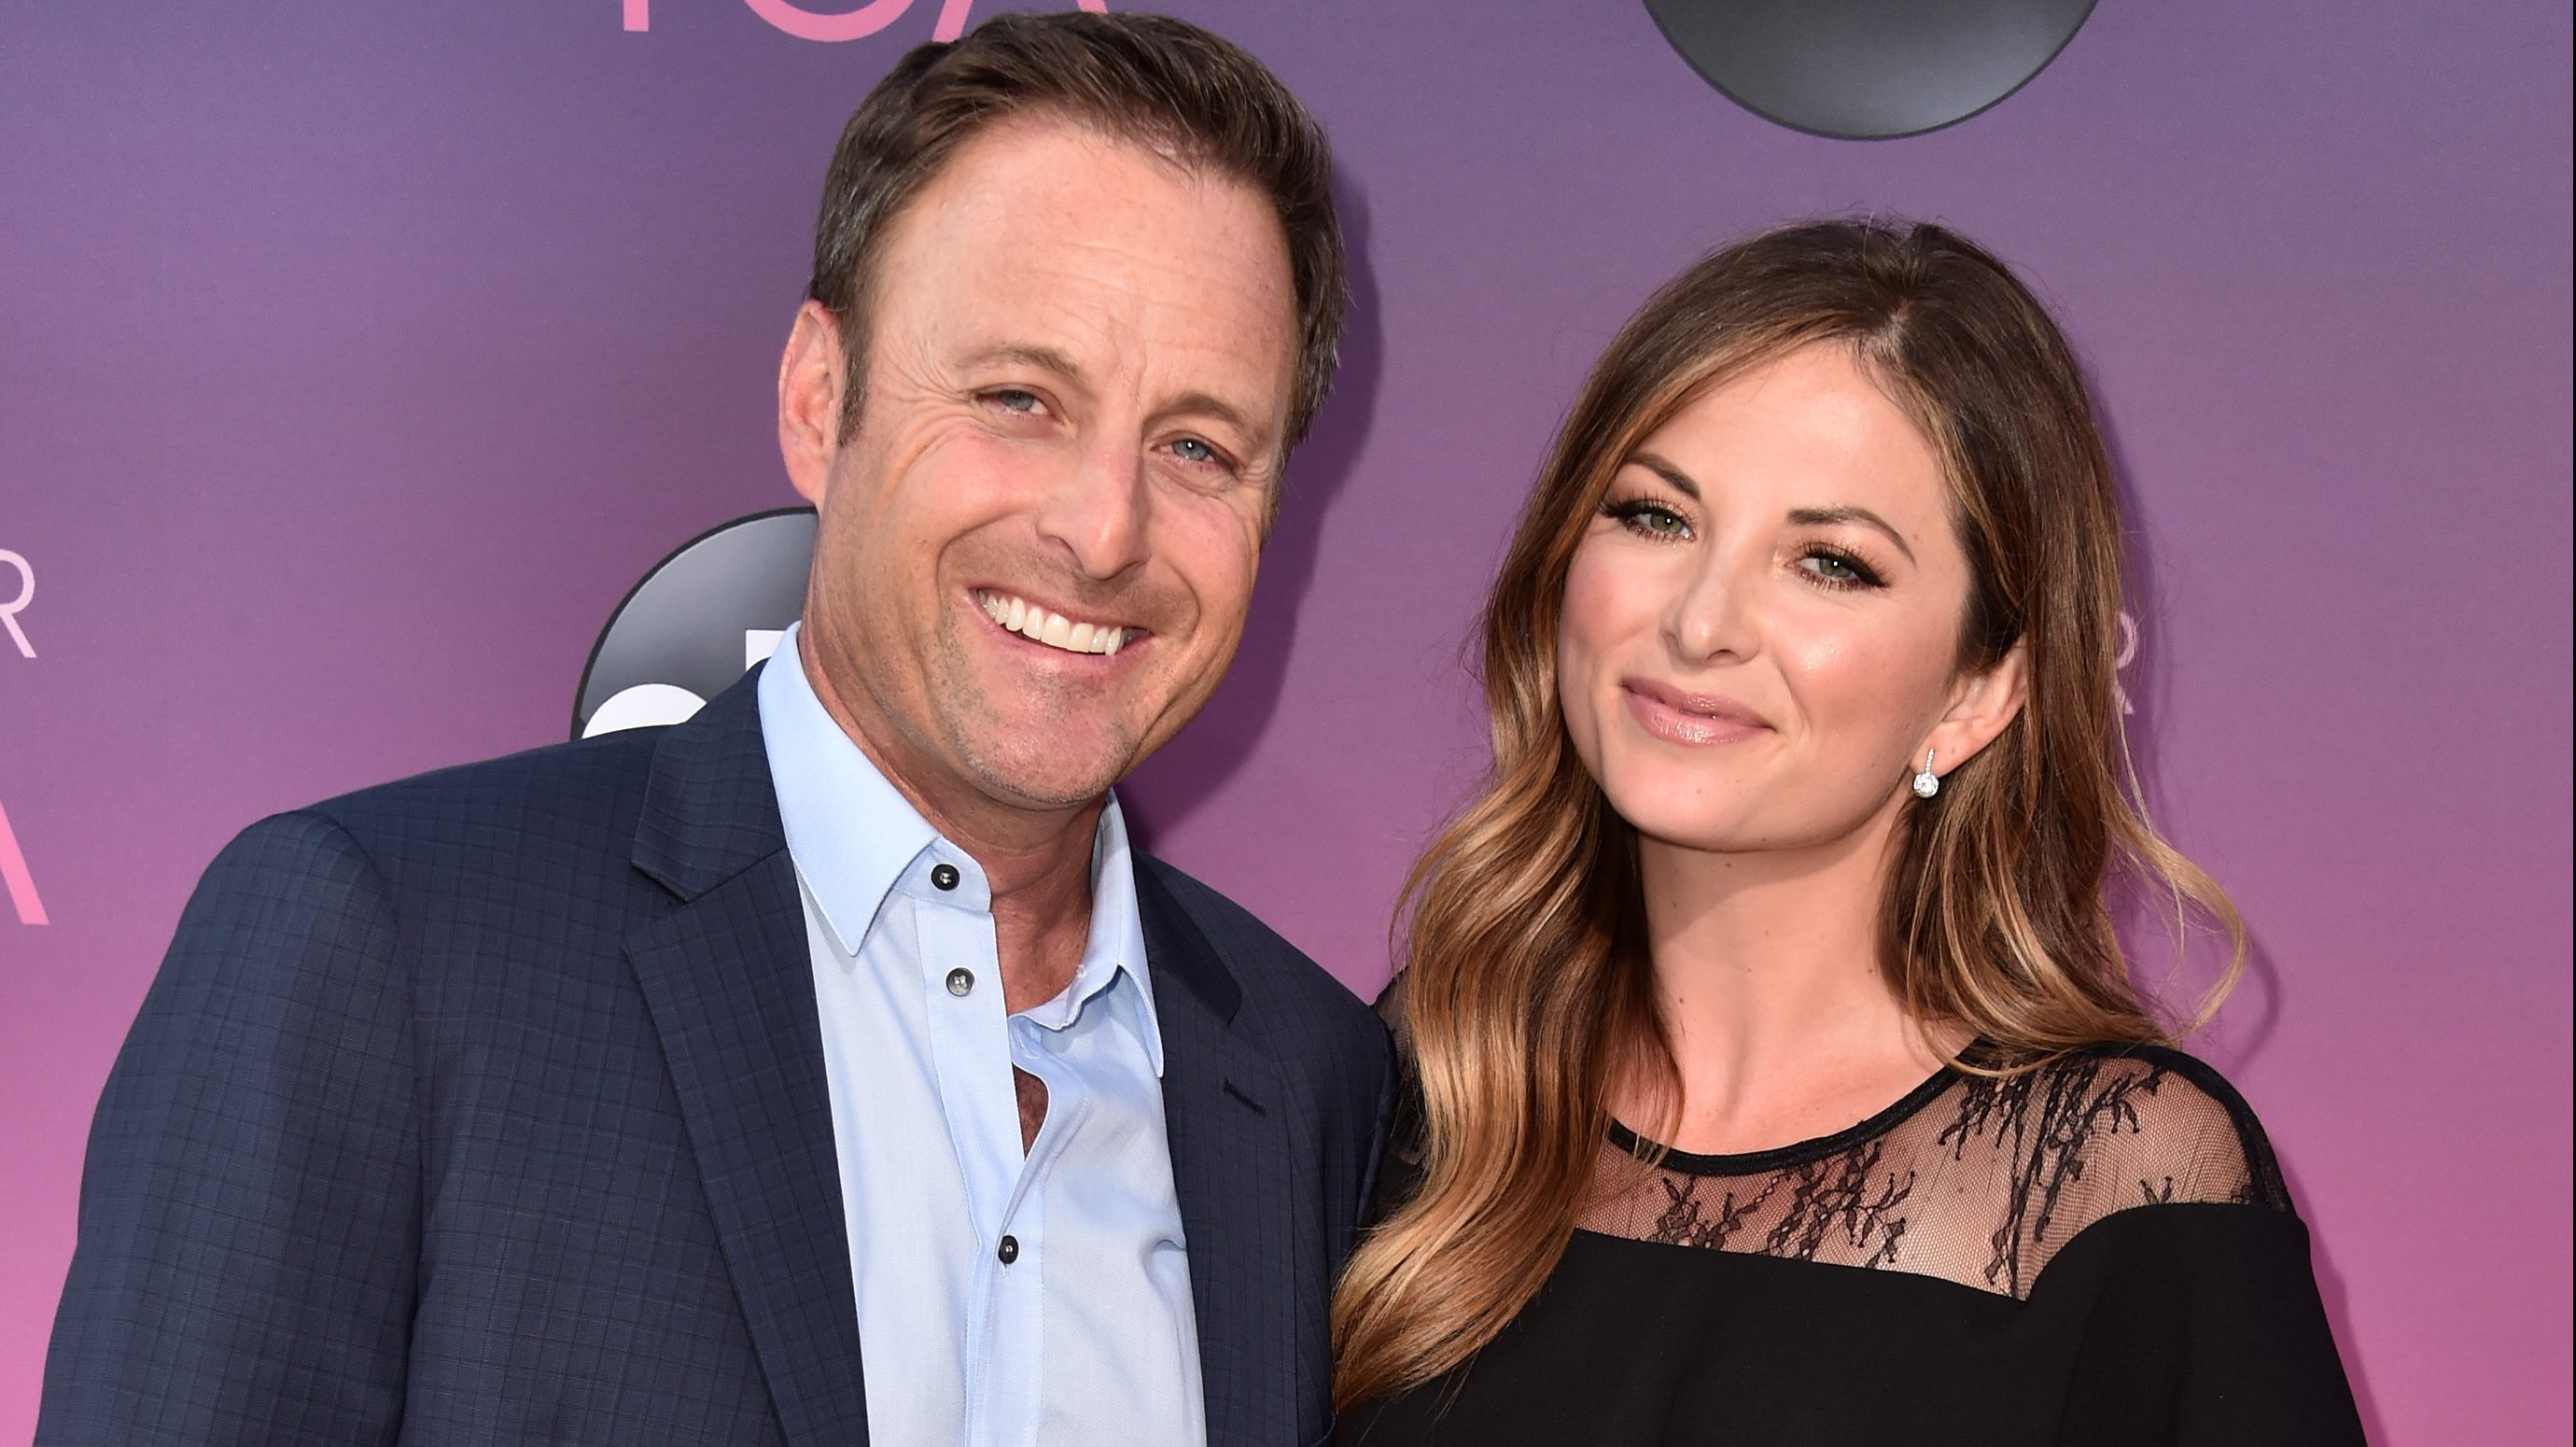 Chris Harrison and Lauren Zima: 5 Fast Facts You Need to